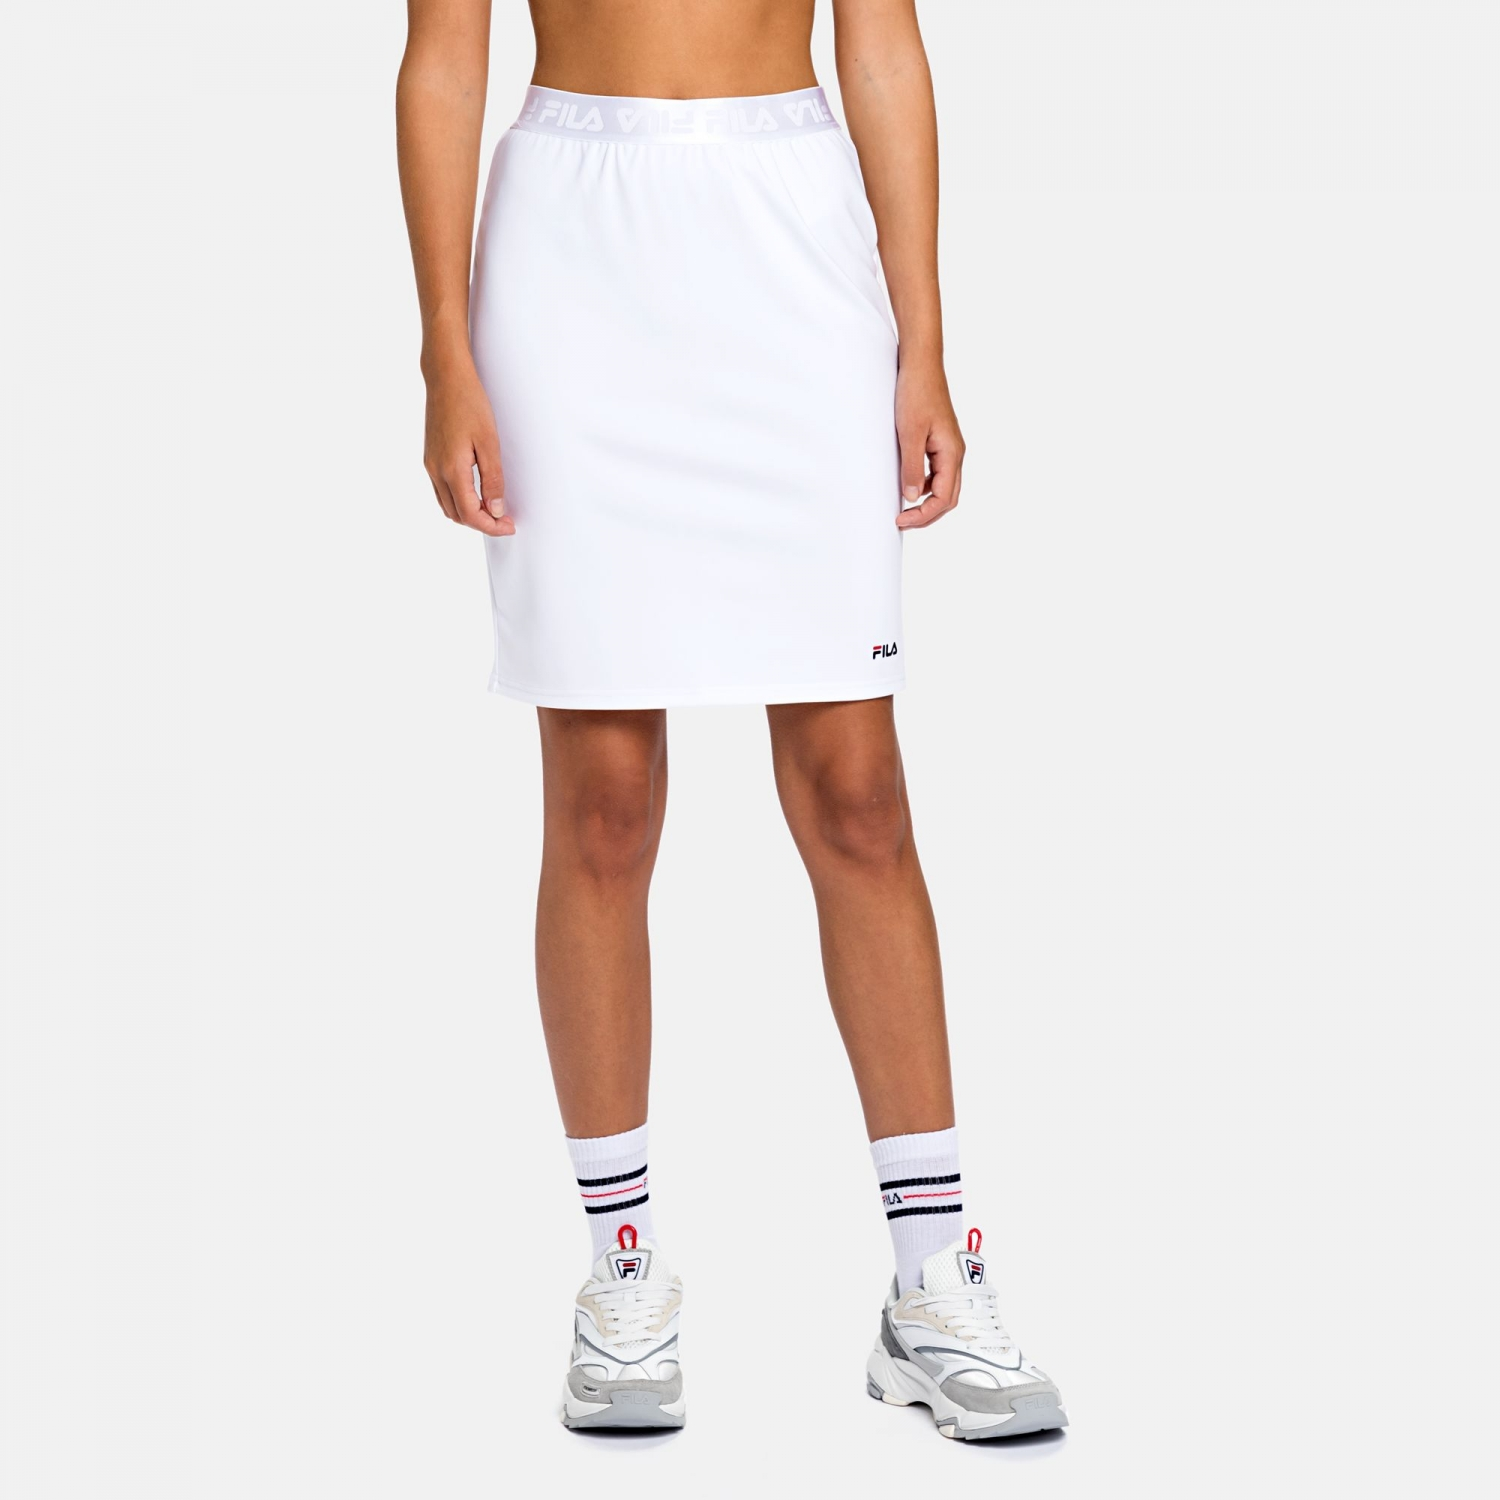 Fila Chess Skirt white Bild 1